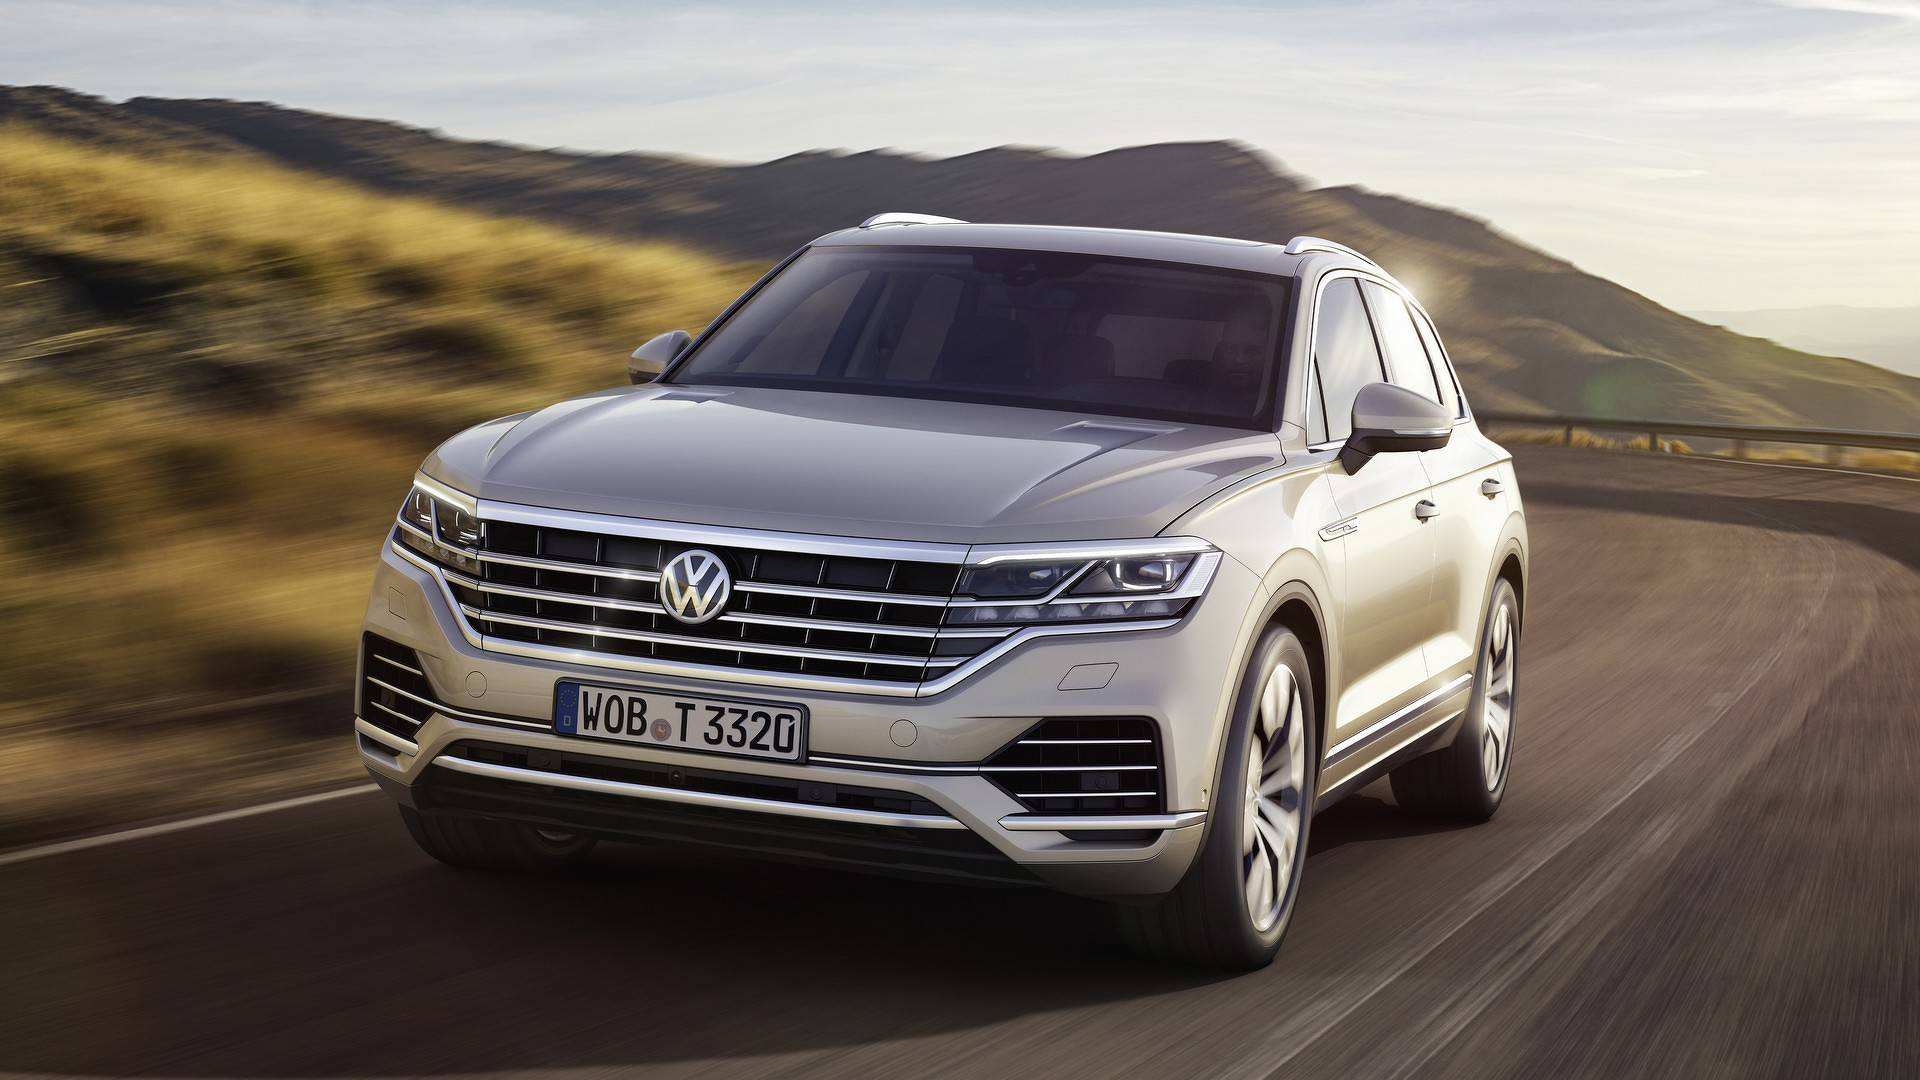 67 The Touareg Vw 2019 Spy Shoot